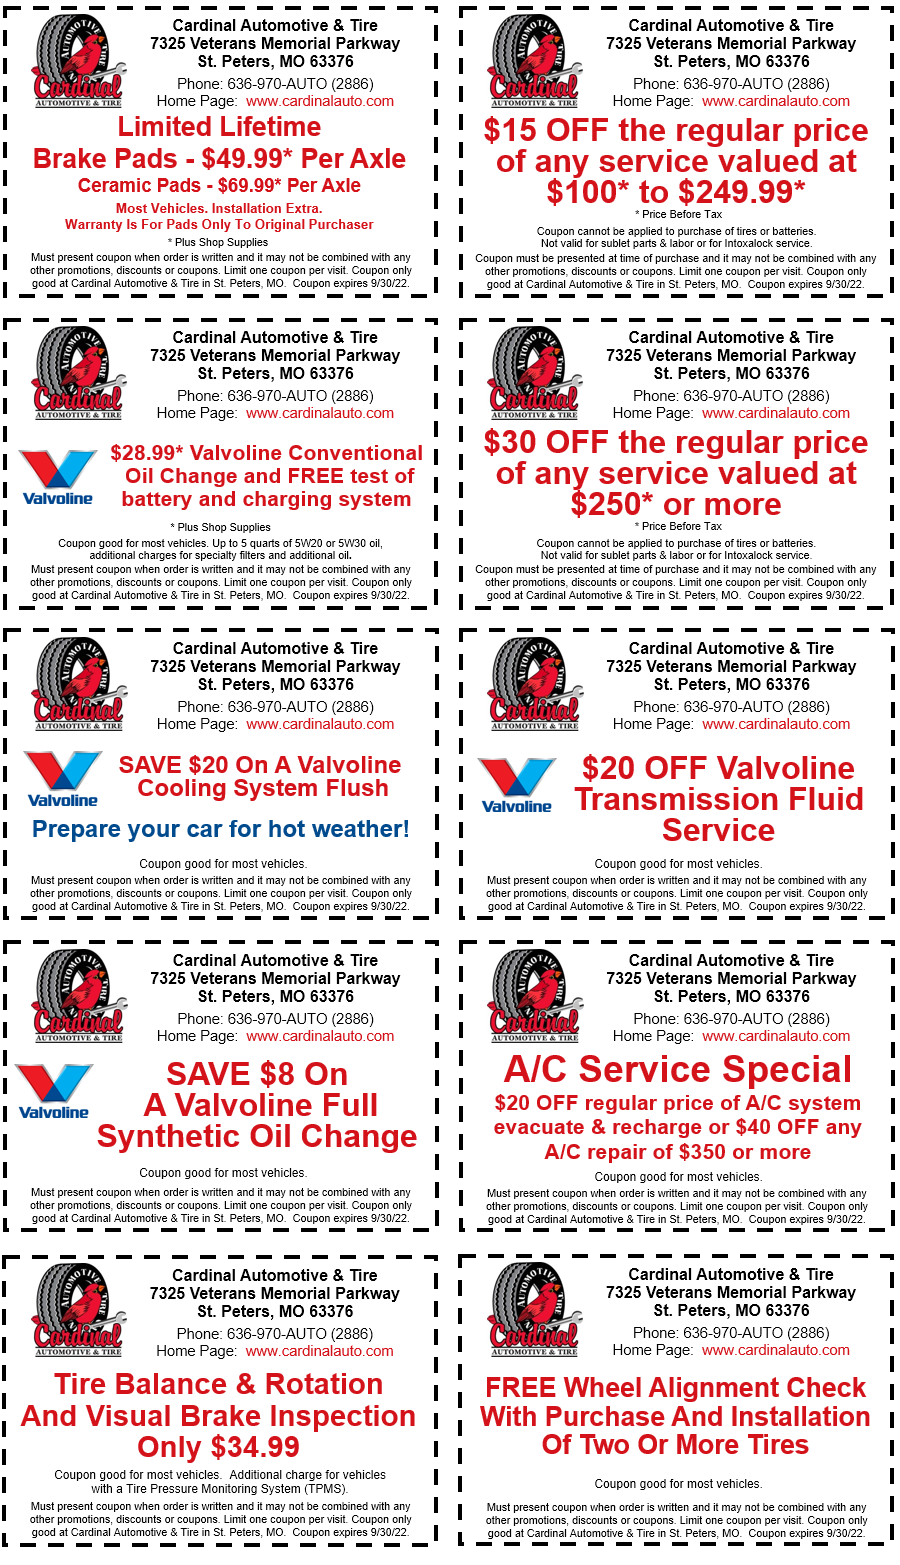 graphic regarding Fuddruckers Coupons Printable titled Cardinal digicam coupon codes / American large dresses